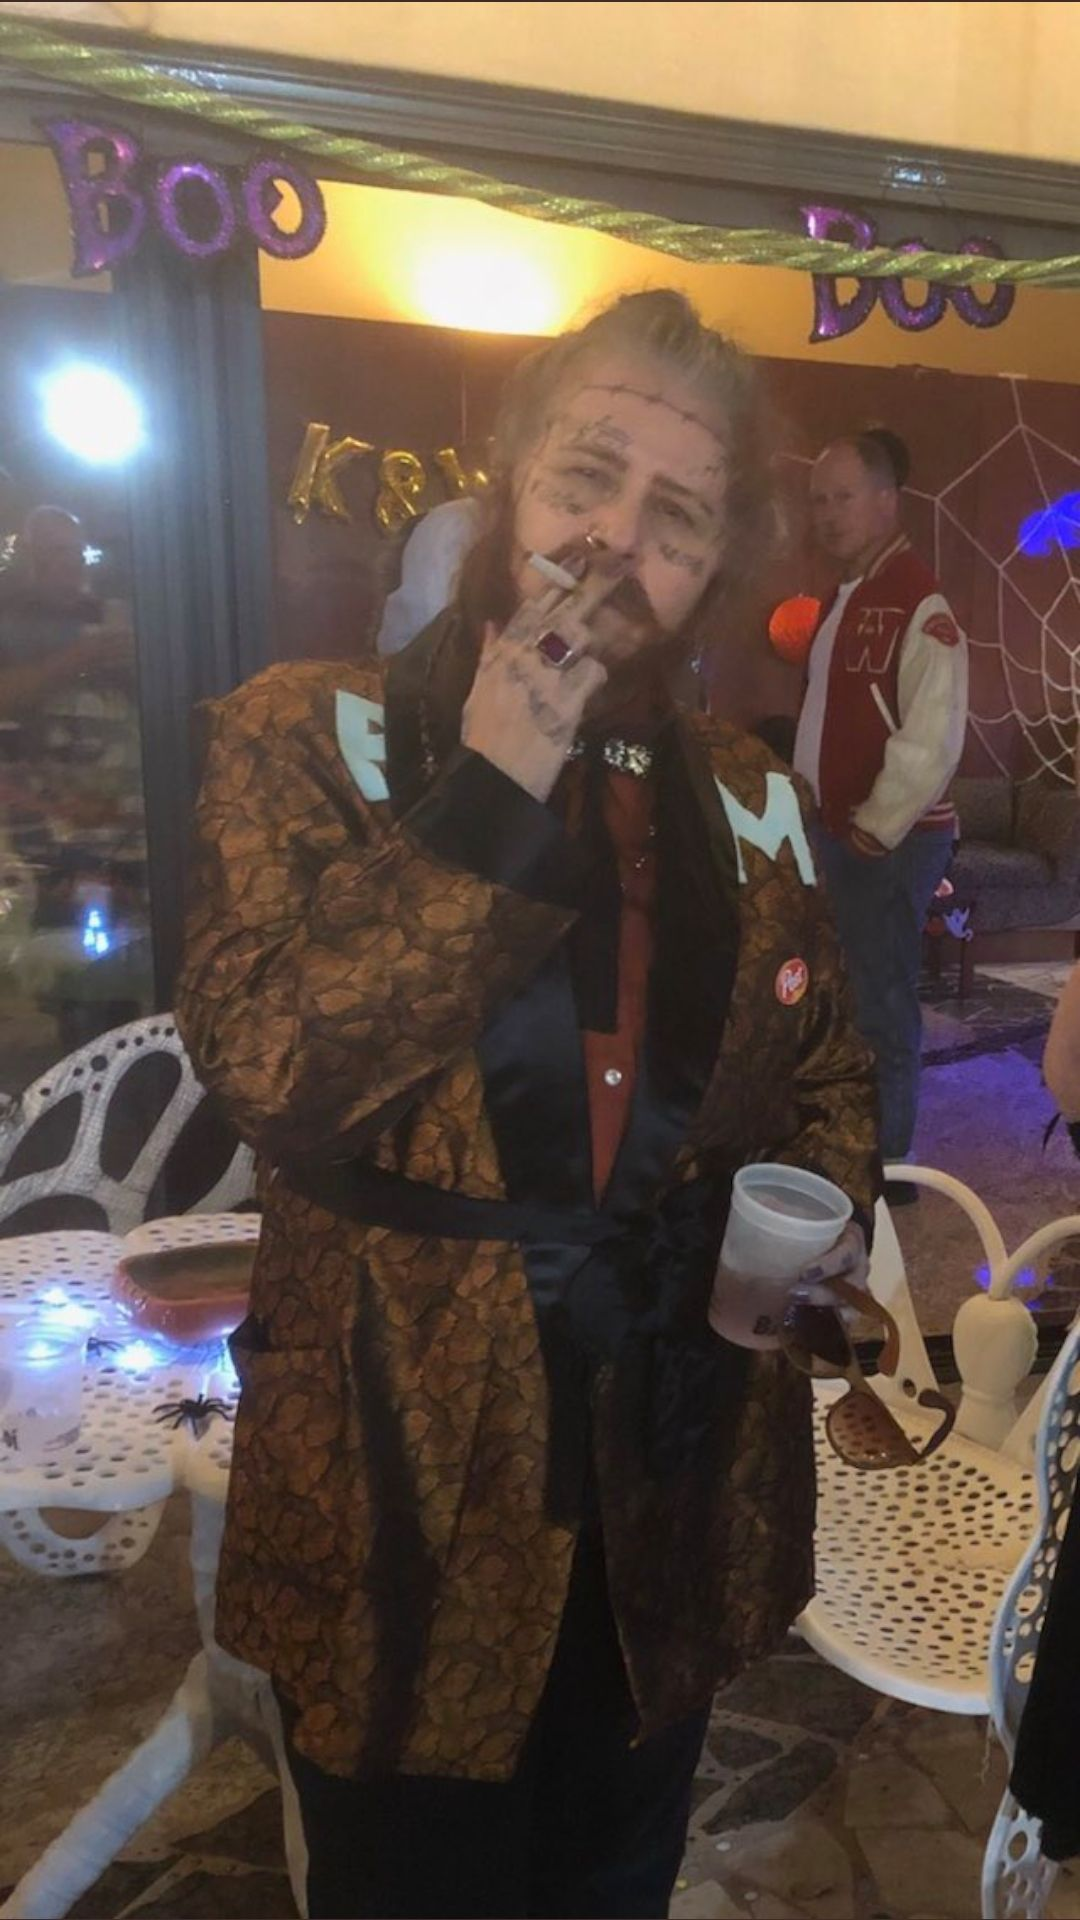 This is a 63 year old woman dressed as Post Malone